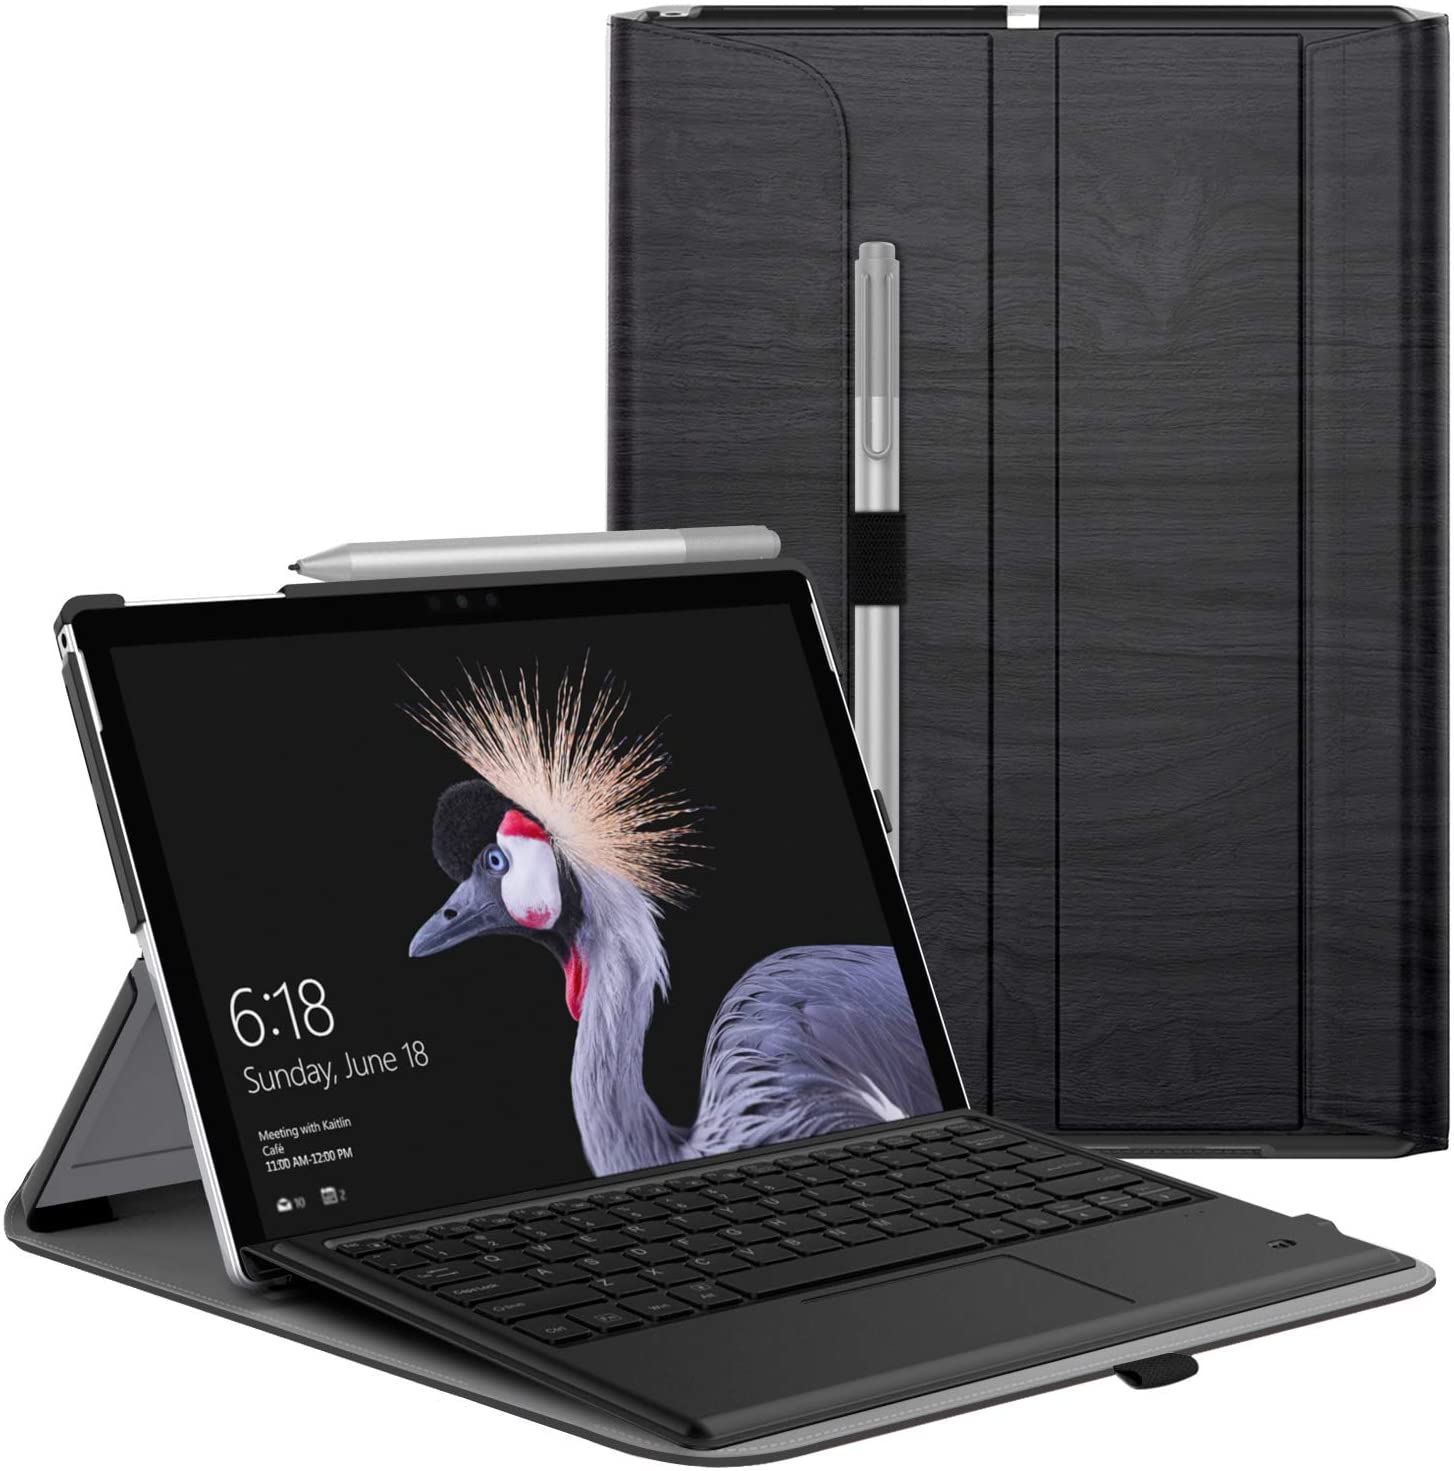 MoKo Case Fit Microsoft Surface Pro 7/Pro 6, Ultra Lightweight Portfolio Business Cover with Pen Holder for Surface Pro 7/6/5/4/Pro LTE/Pro 2017, Compatible with Type Cover Keyboard - Dark Wood Grain